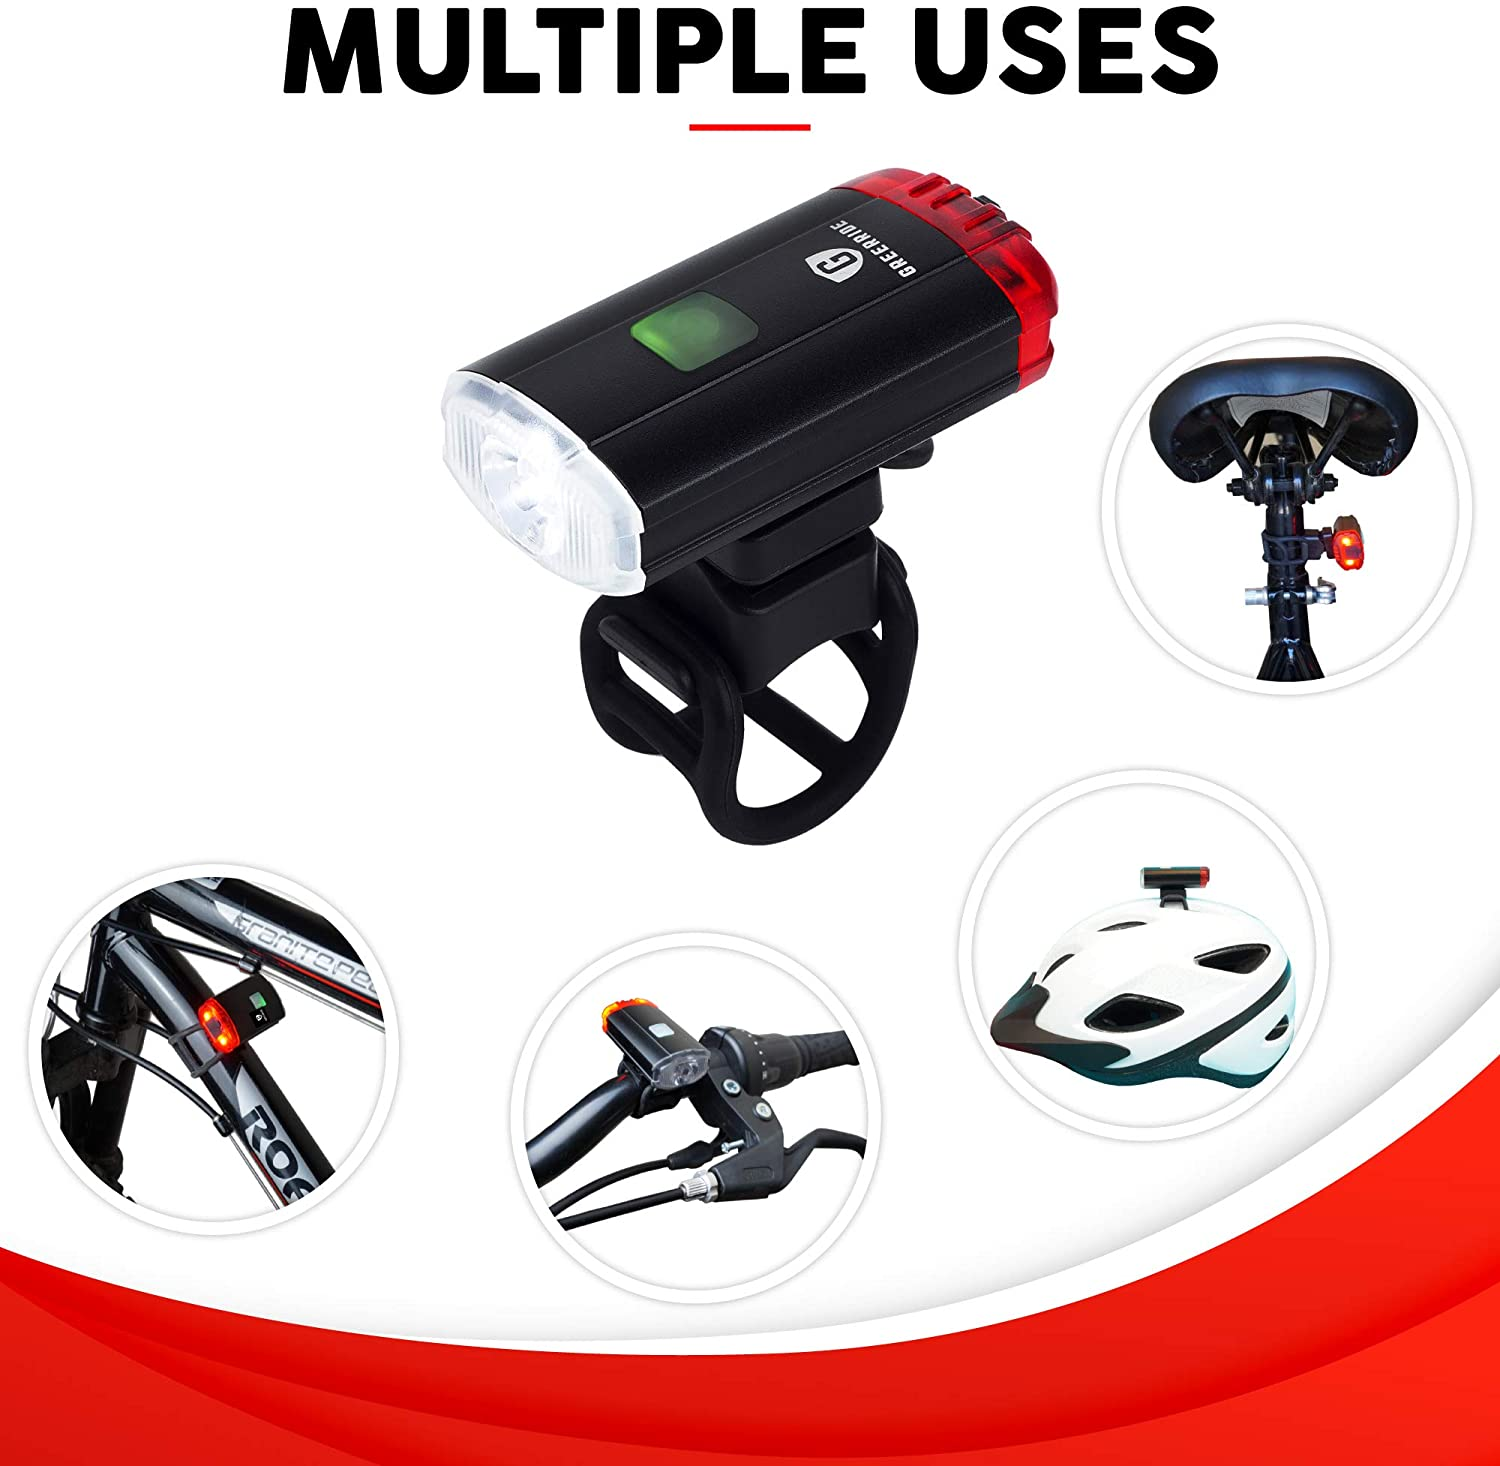 USB LED Headlight with Multi Modes and Adjustable Mount-Day or Night Riding Gift Front and Rear Bright Safety Bicycle Lights to Make You Visible On the Road Greerride Rechargeable Bike Helmet Light